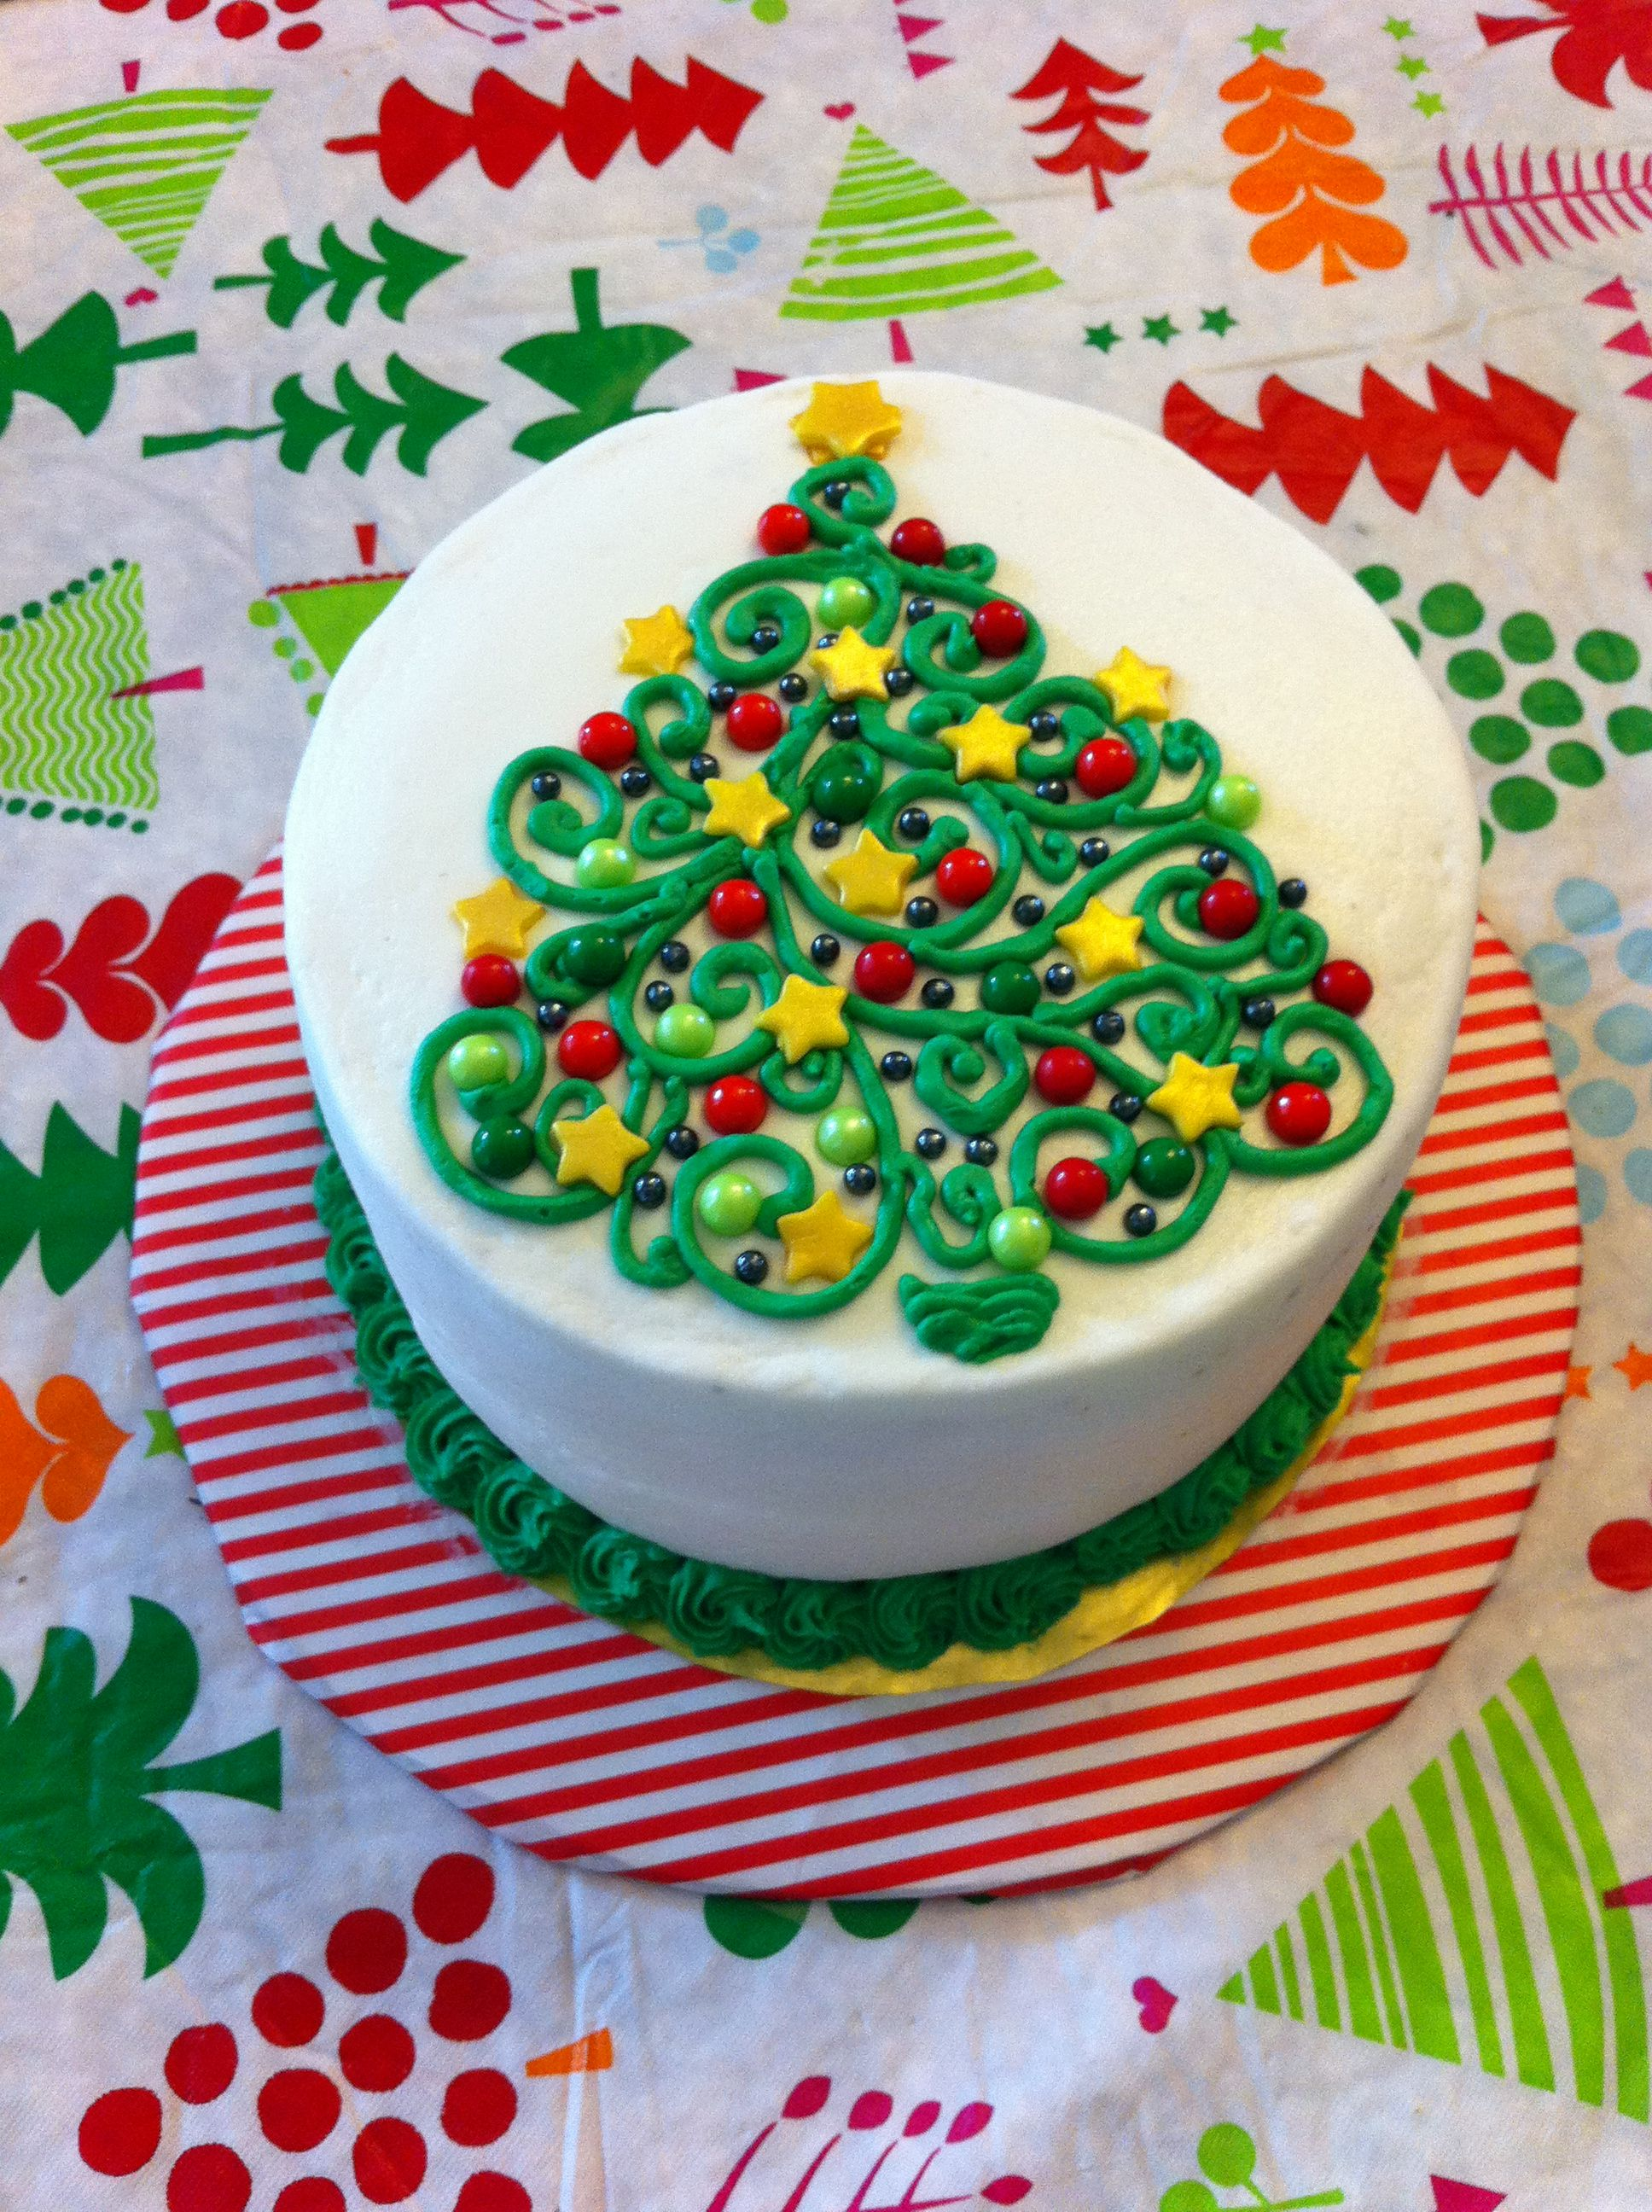 Swirly Christmas Tree cake - Swirly Christmas tree ...